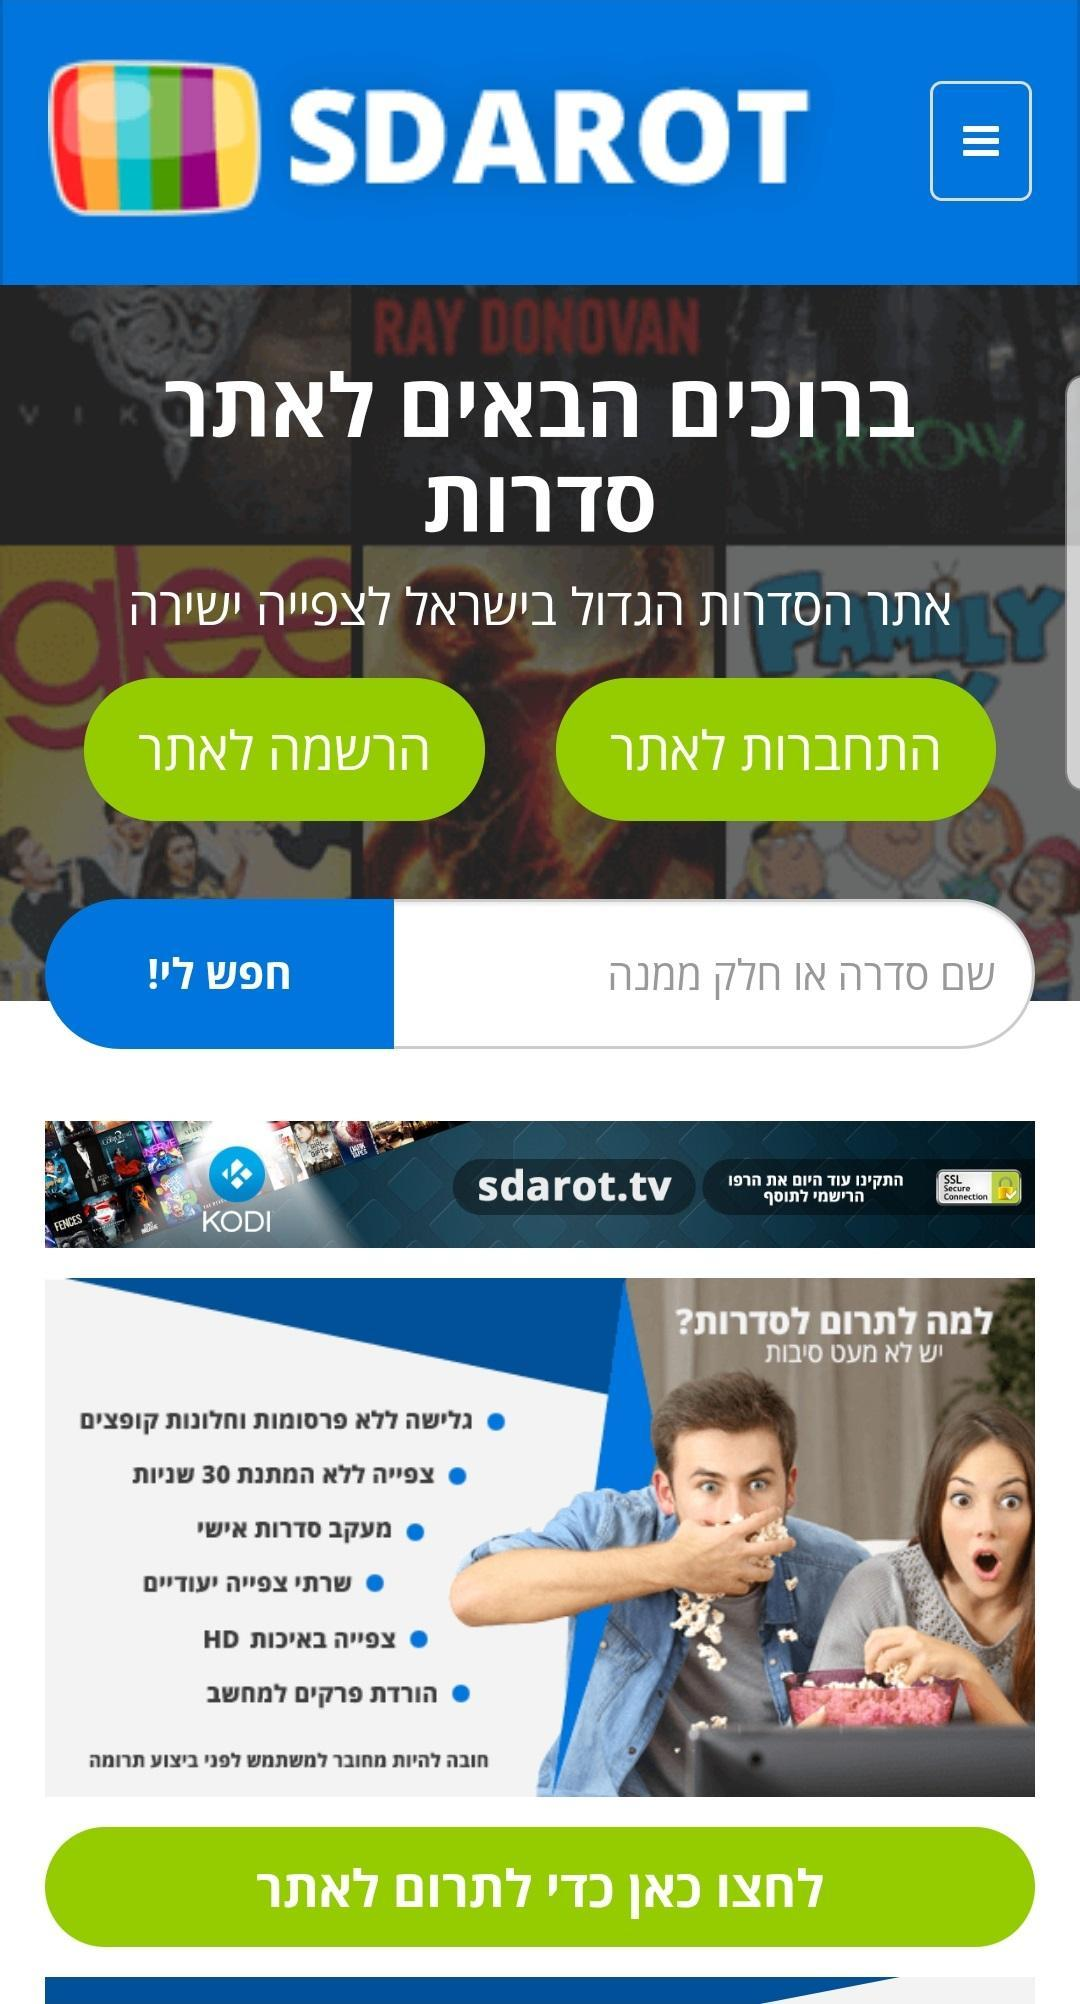 Sdarot TV סדרות for Android - APK Download